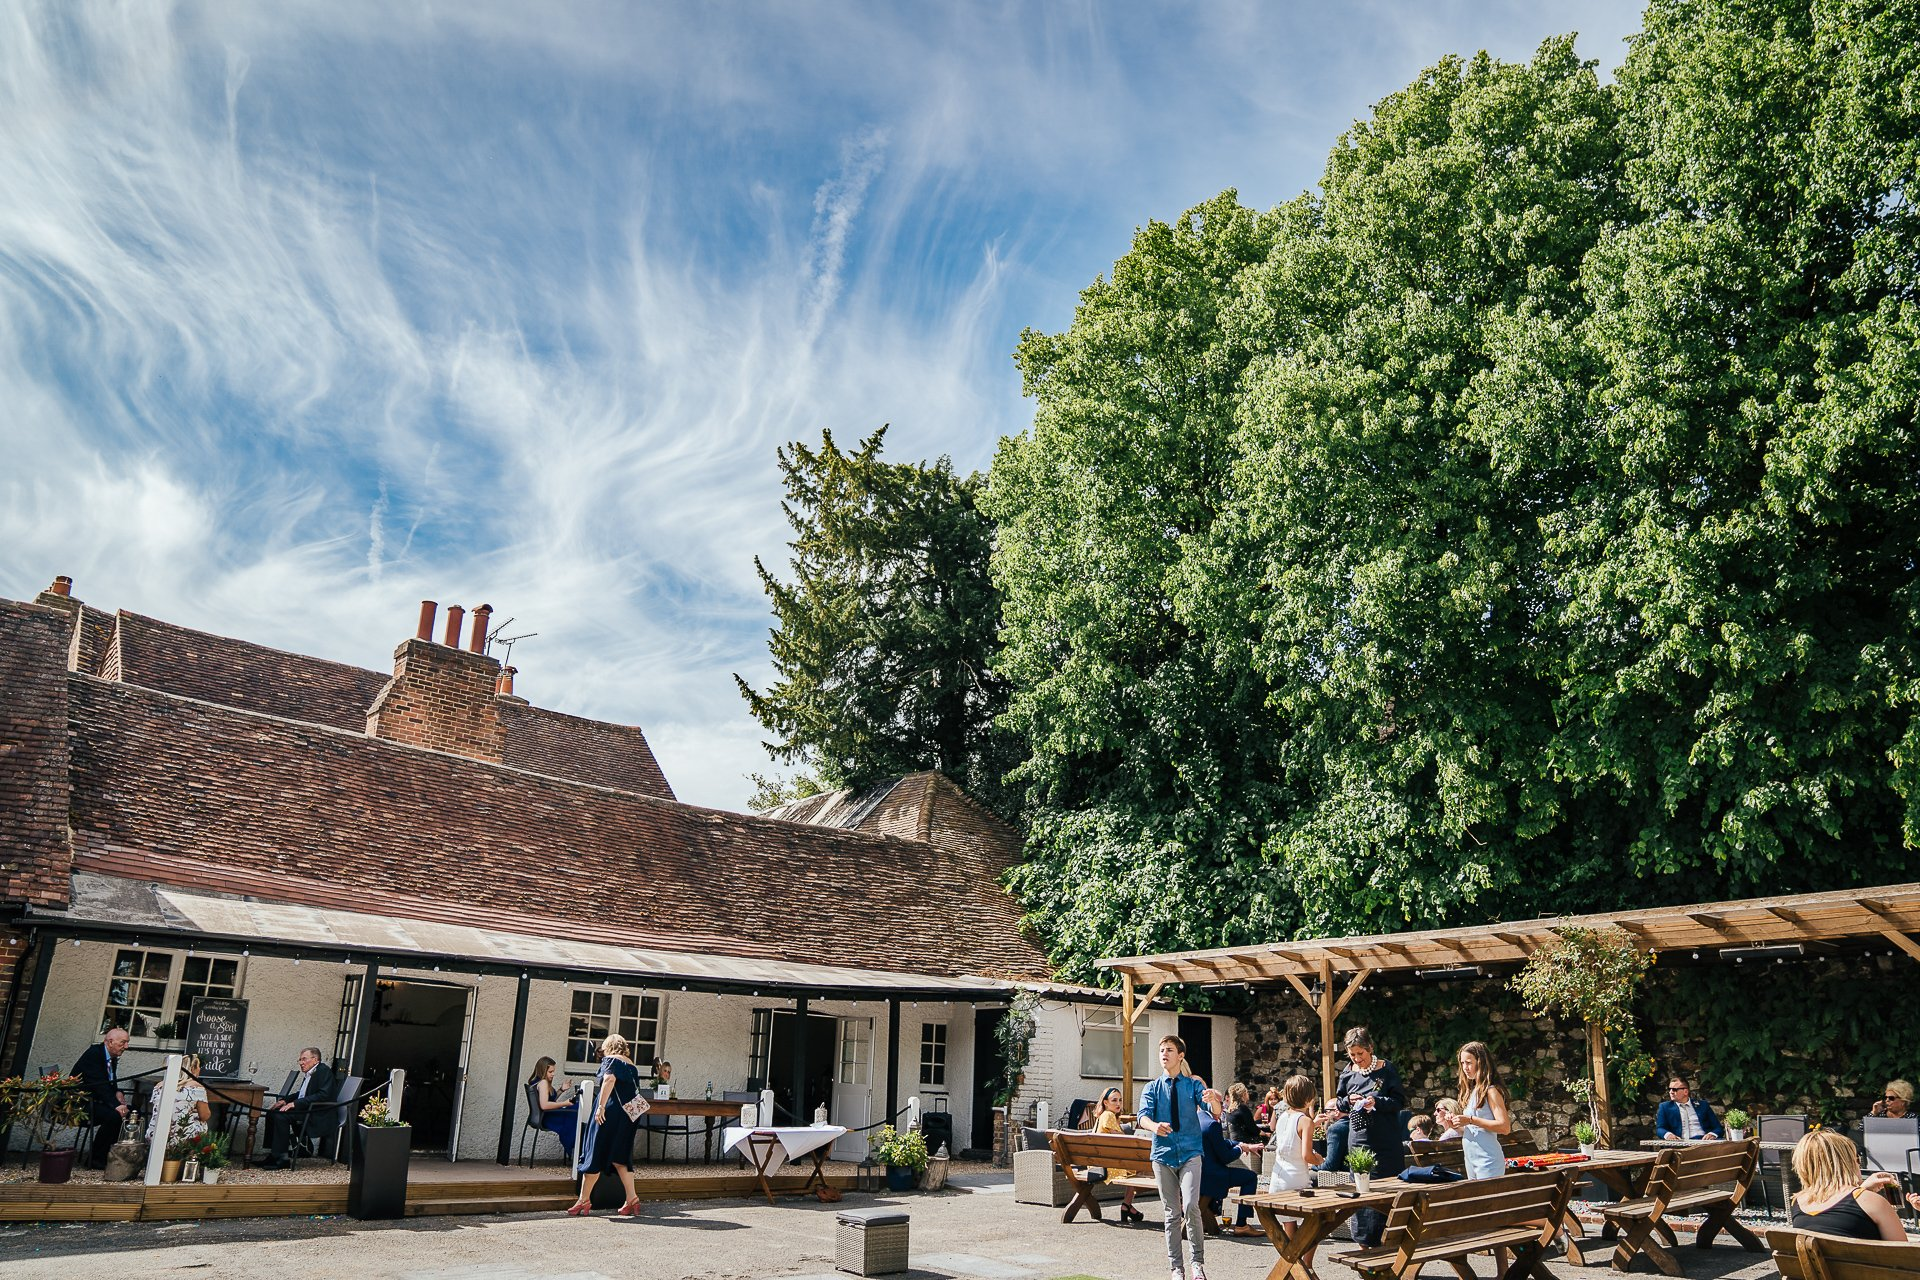 The Courtyard at the Bull Hotel Kent with wedding guests and blue sky